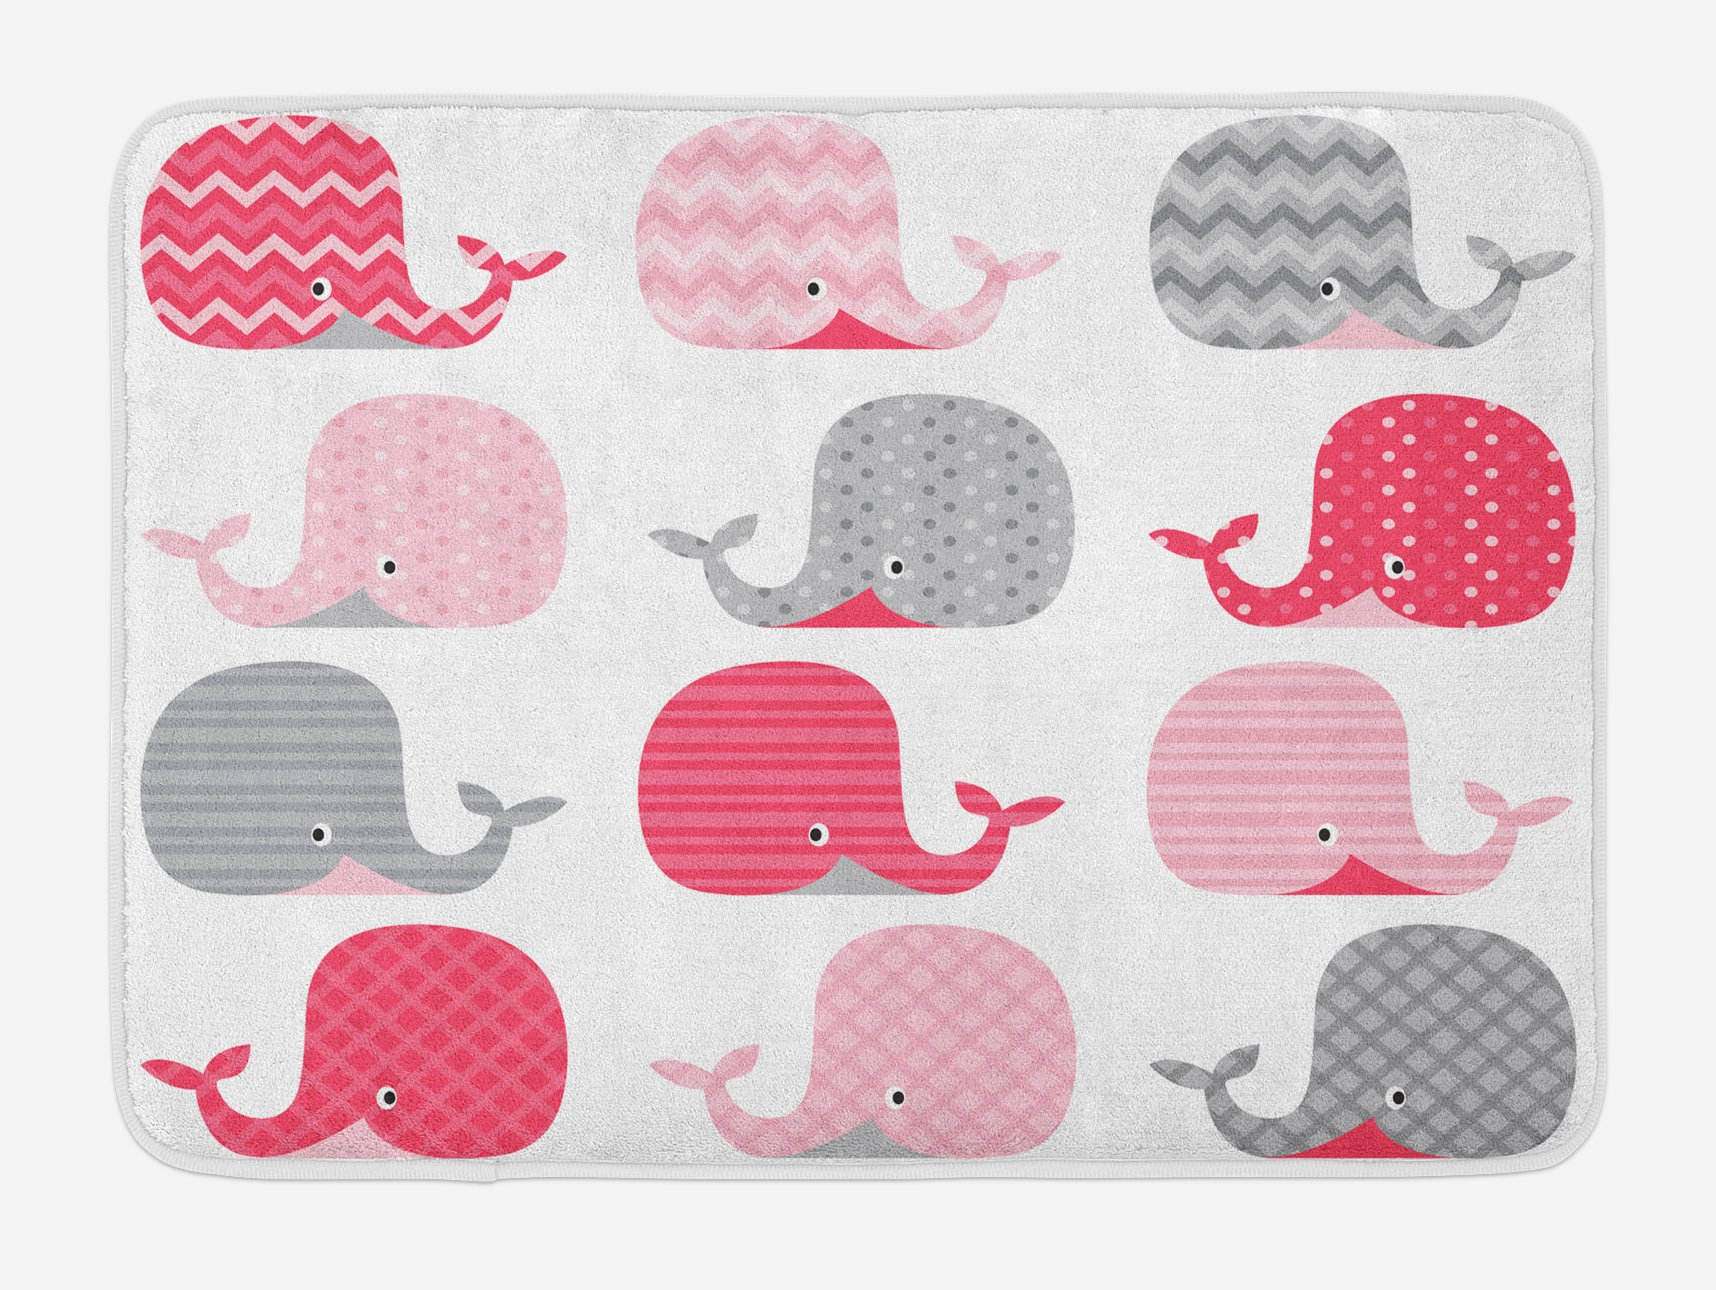 Lunarable Whale Bath Mat, Cute Patterned Whales Design with Oceanic Animals Aqua Wildlife Theme, Plush Bathroom Decor Mat with Non Slip Backing, 29.5 W X 17.5 W Inches, Pink Grey and Pale Pink